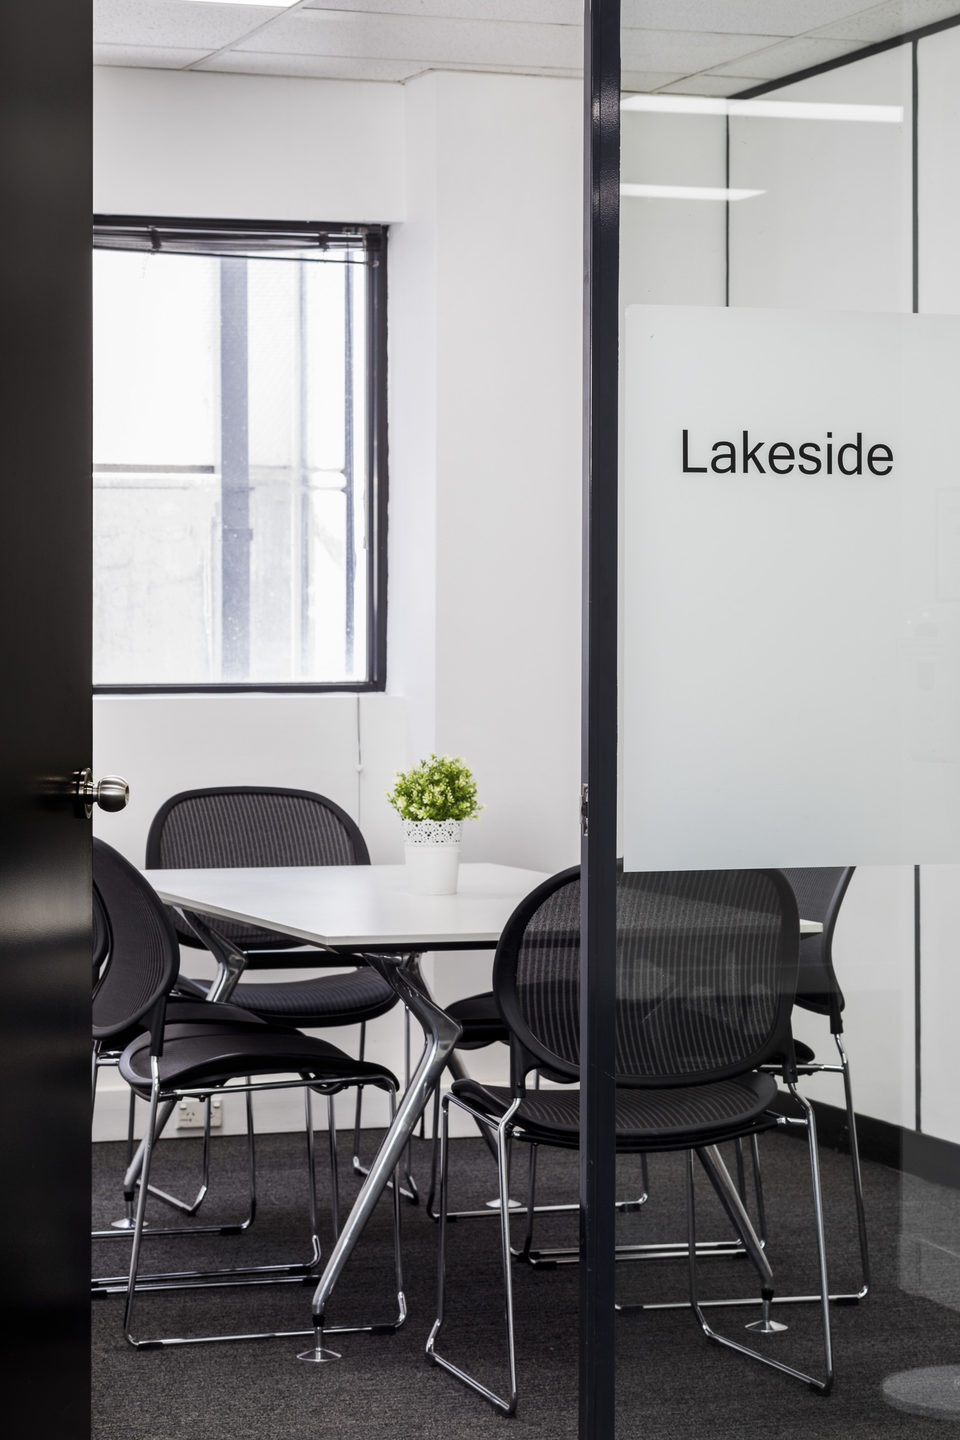 Lakeside Meeting Room, South Melbourne